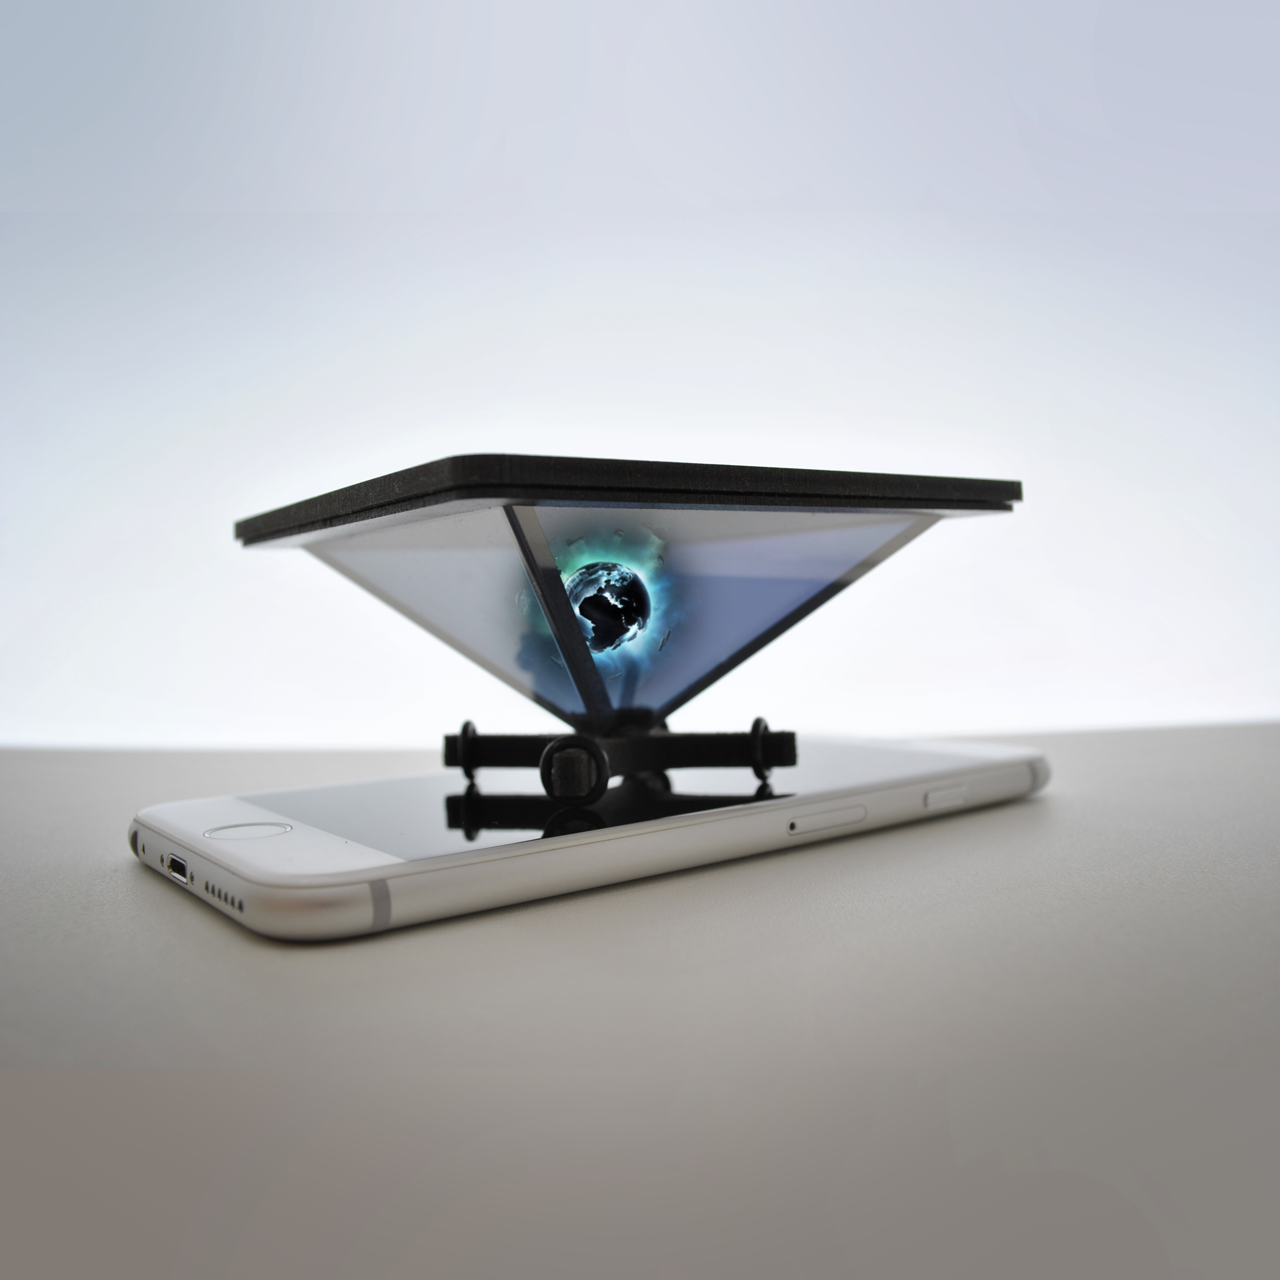 Holho pyramid for smartphone